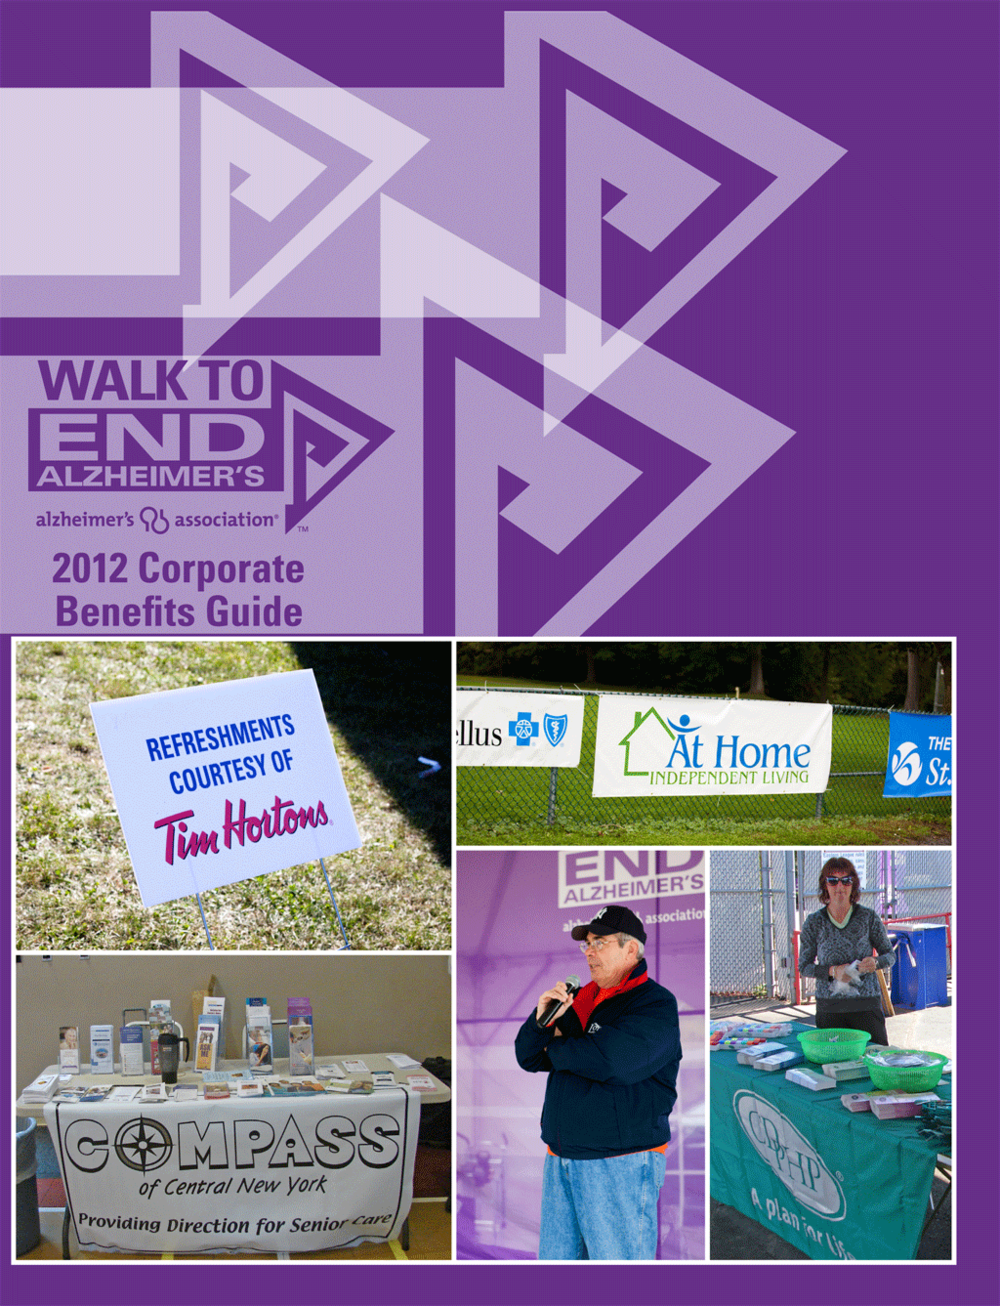 Walk To End Alzheimer's Corporate Prospectus